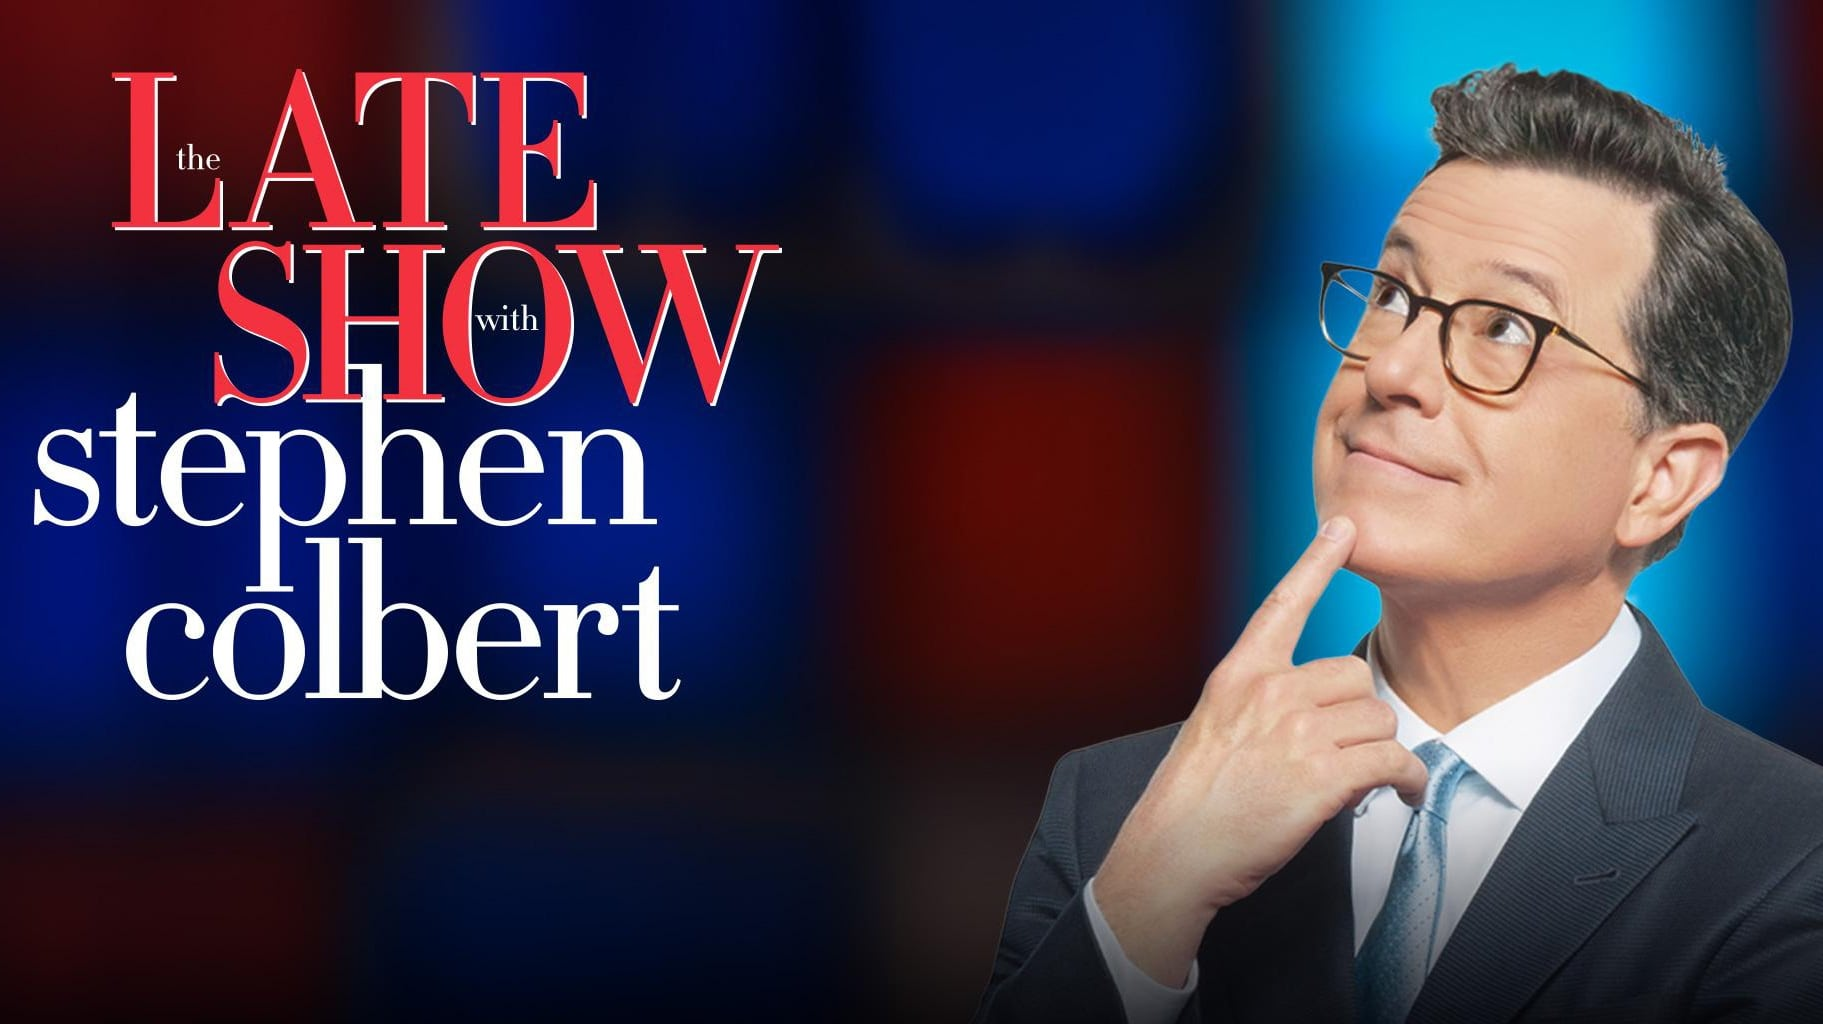 The Late Show with Stephen Colbert - Season 1 Episode 70 : Paul Giamatti, Guerrilla Girls, J.B. Mauney